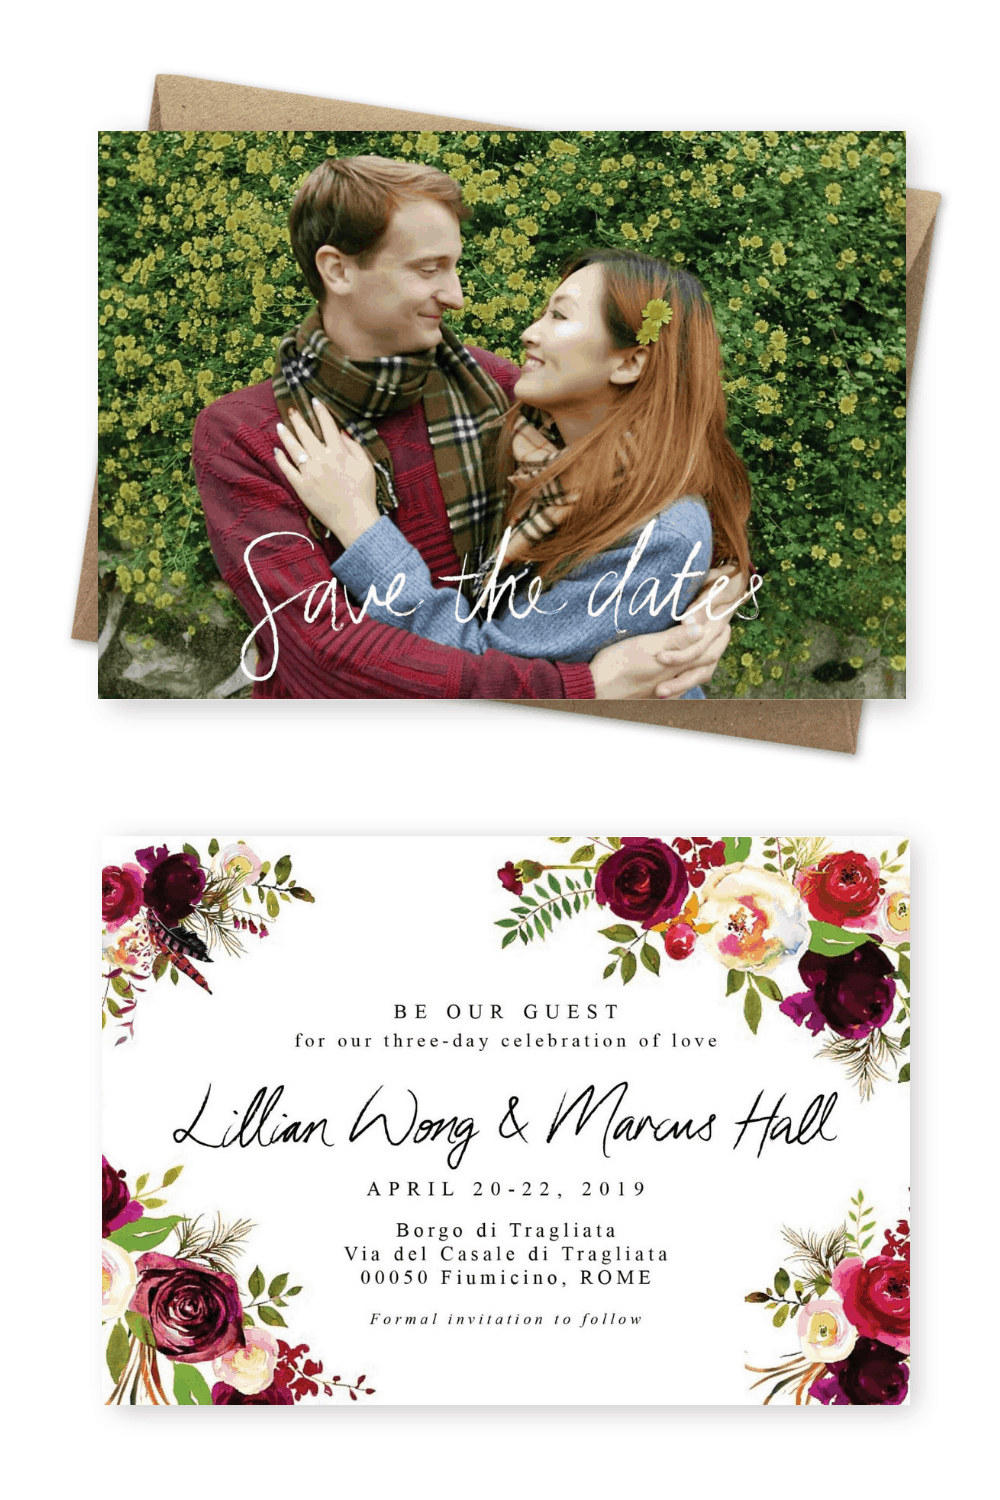 Save the Dates Australia Beautiful Photo Save the Dates For the Love of Stationery